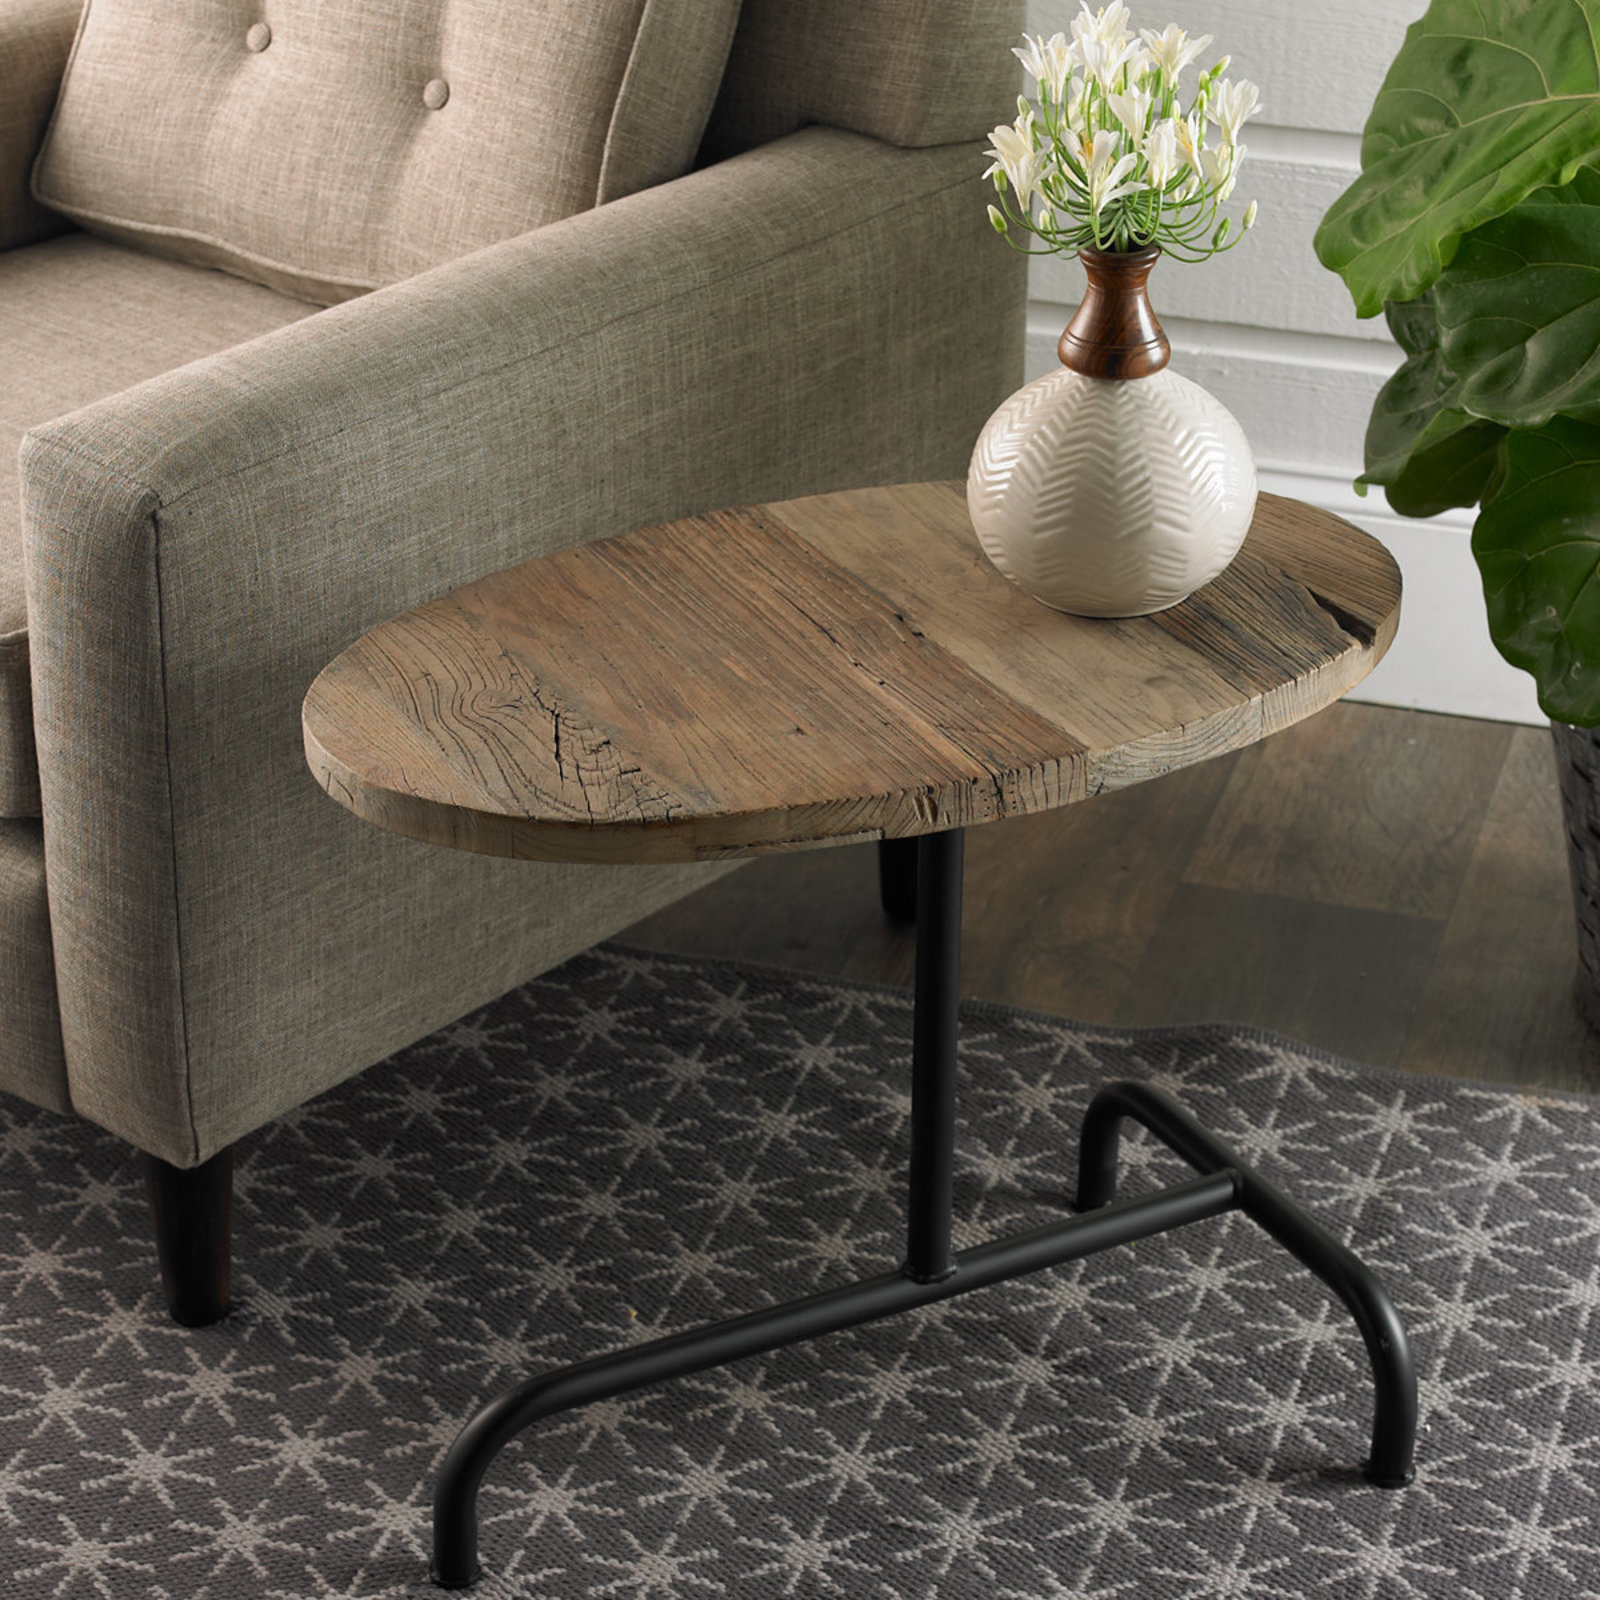 coffee tables side shades light reclaimed wood oval table drum accent cherry dinner wicker sofa kidney bean shaped faux marble end wall decor stump extendable outdoor dining cloth